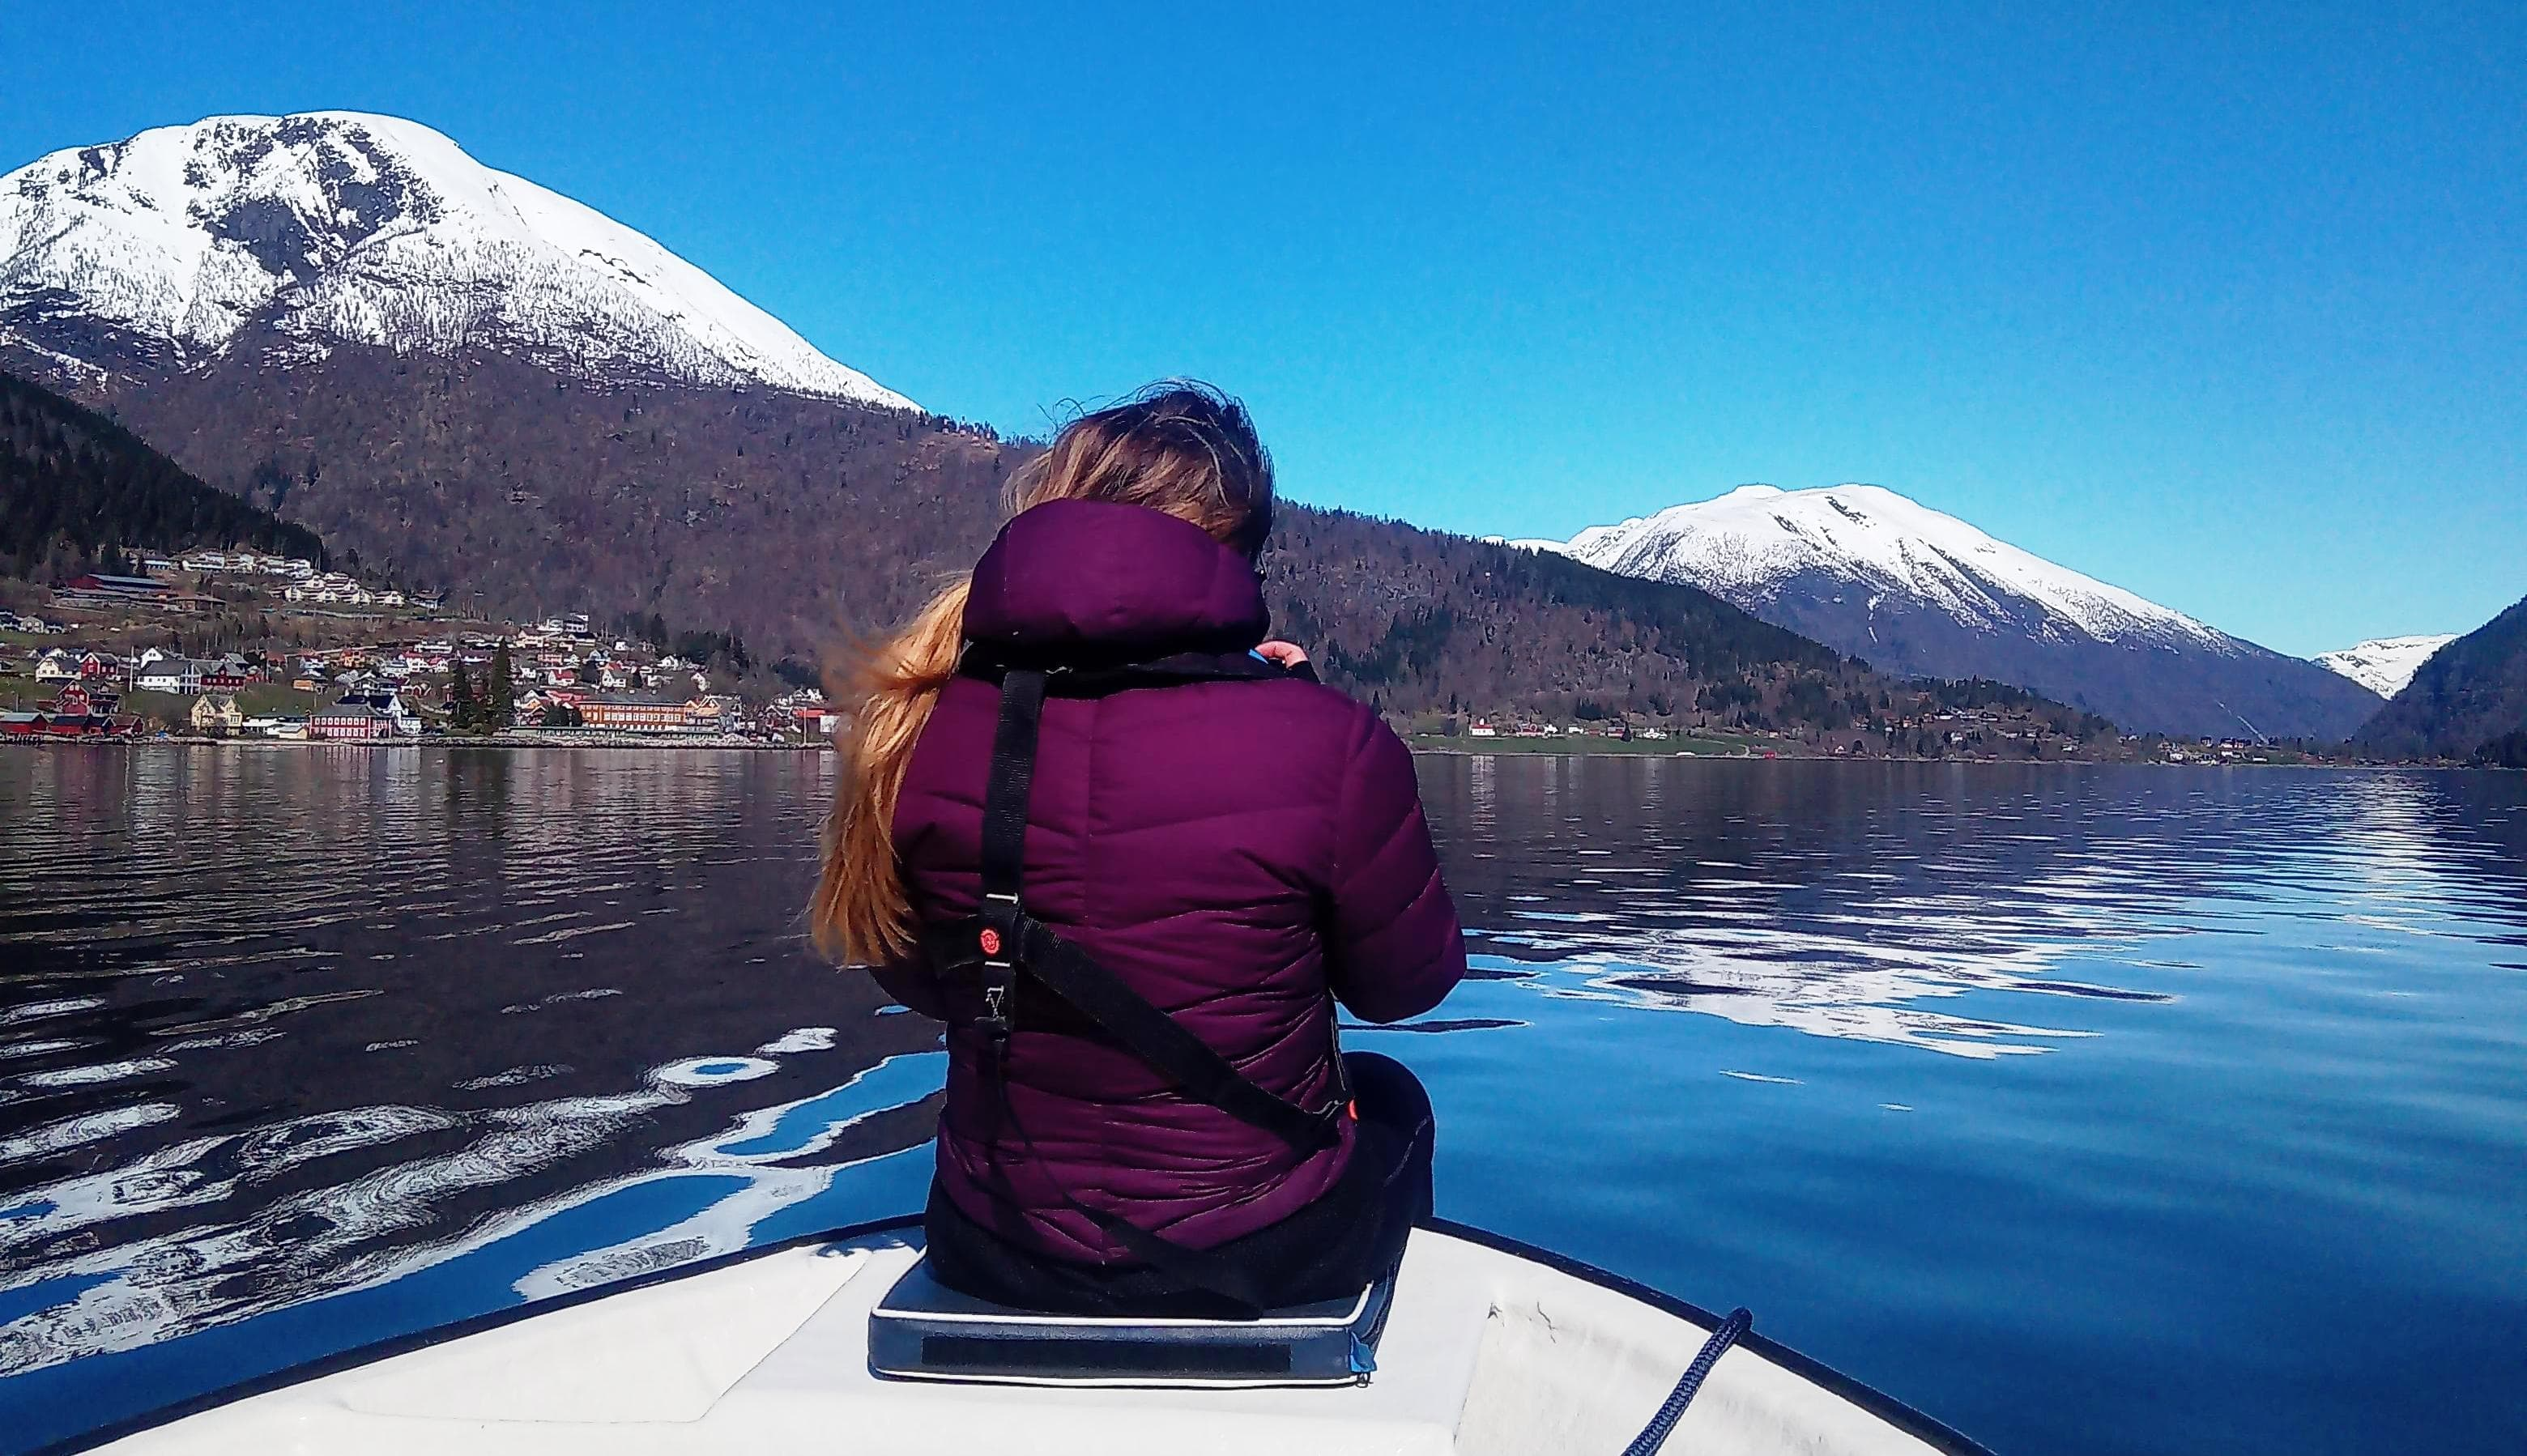 Balestrand Fjord Angling & Trolling - Become a part of the community